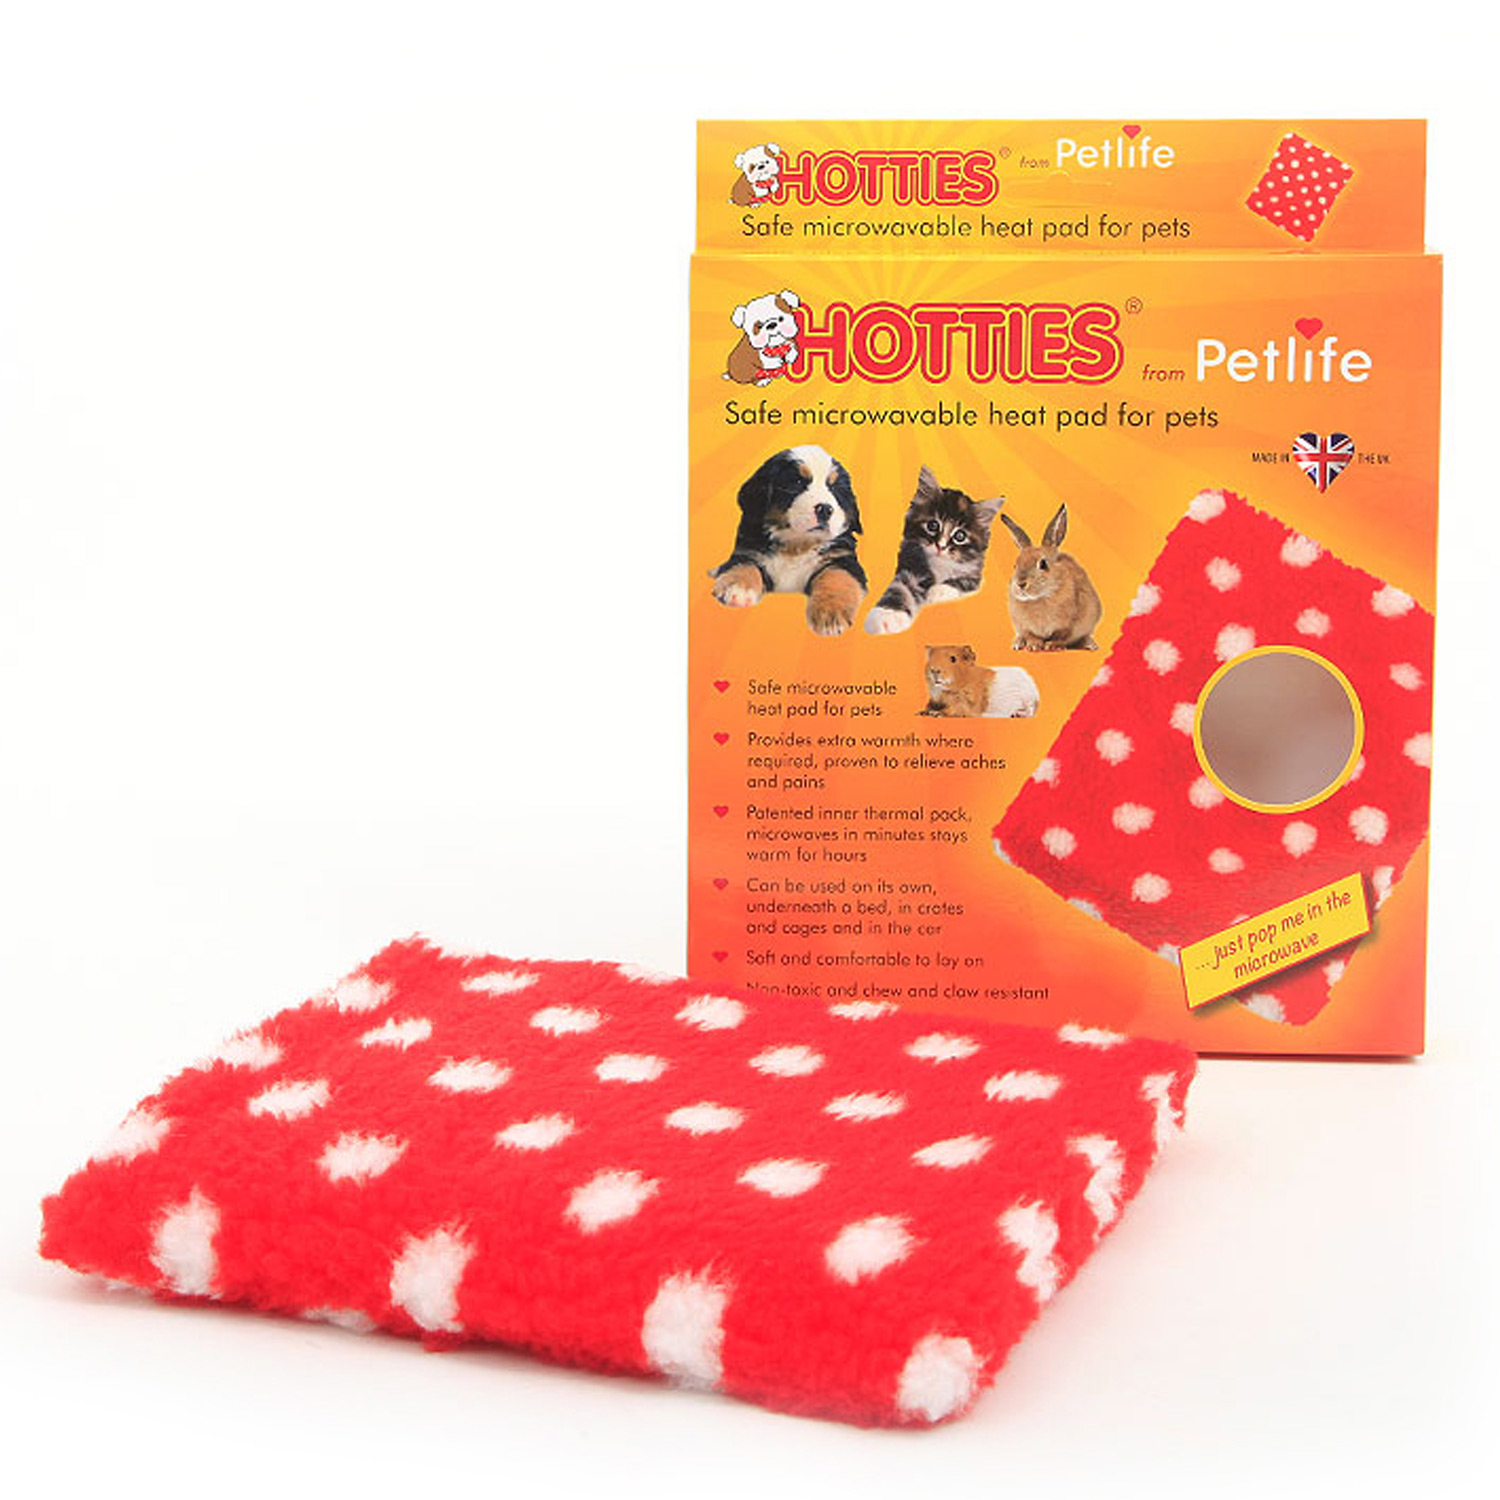 hotties is a microwavable heat pad for pets an ideal hot water bottle